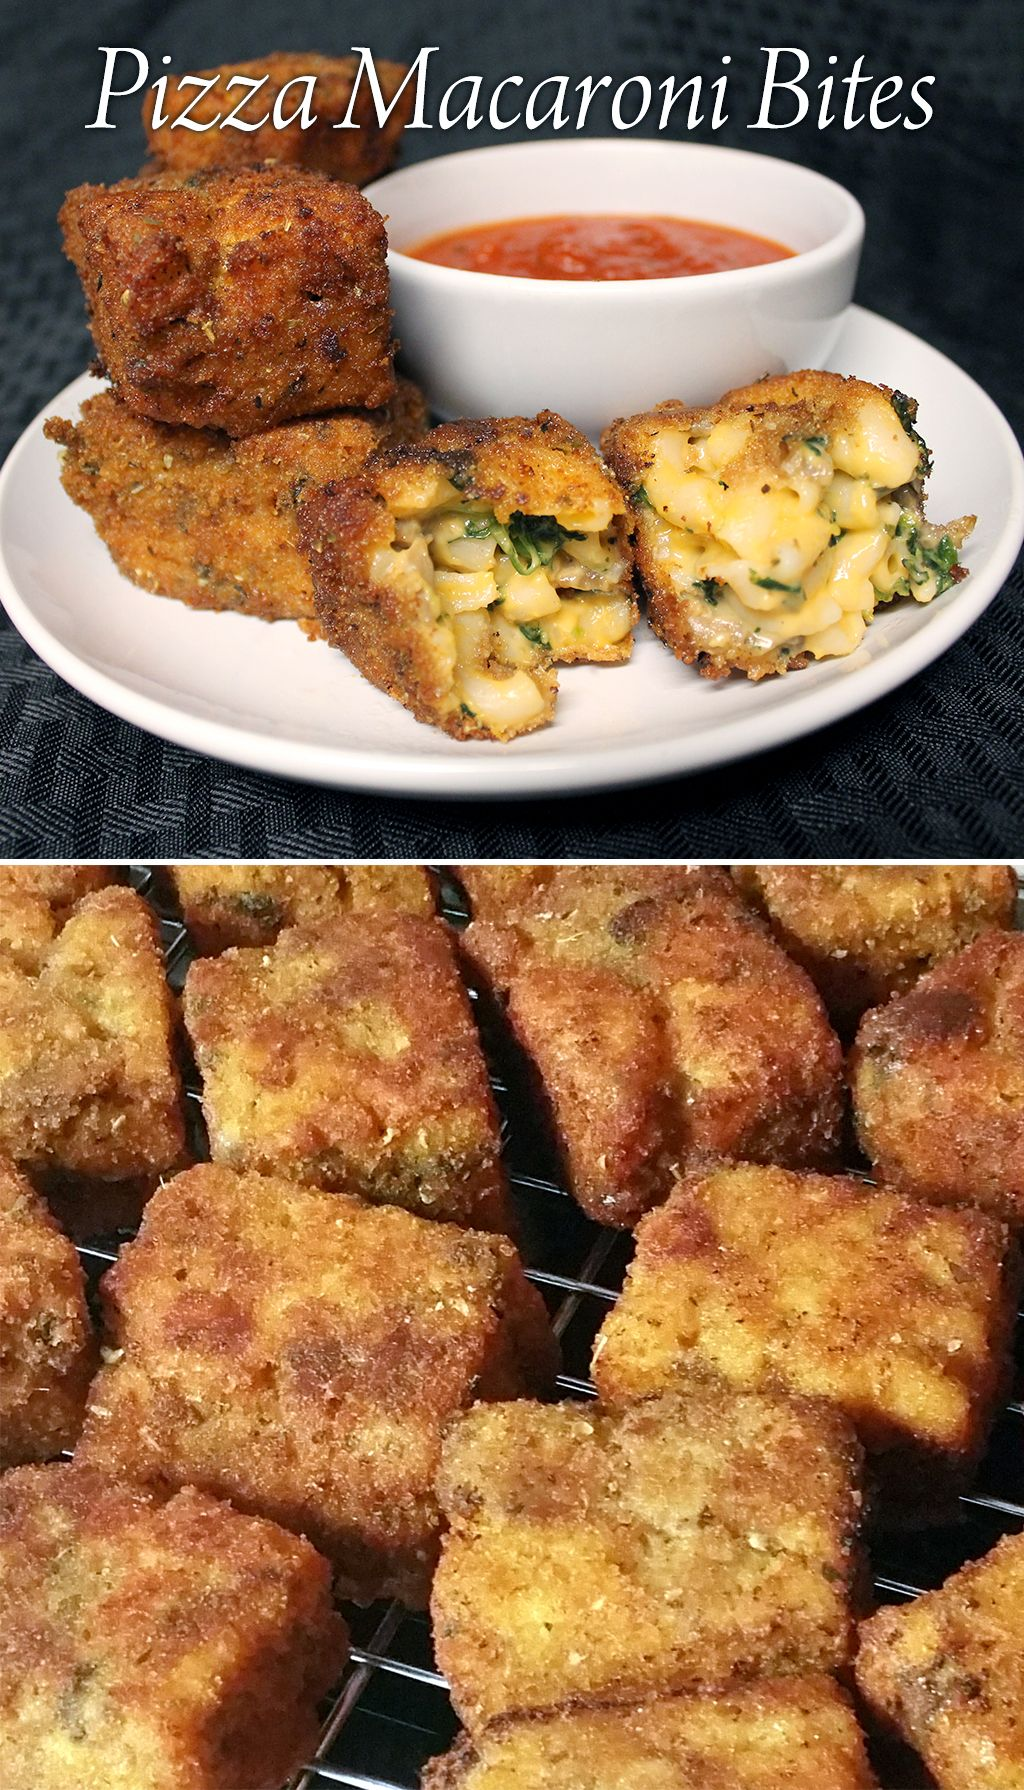 Pizza Macaroni Bites Macaroni, cheese pizza, Air fried